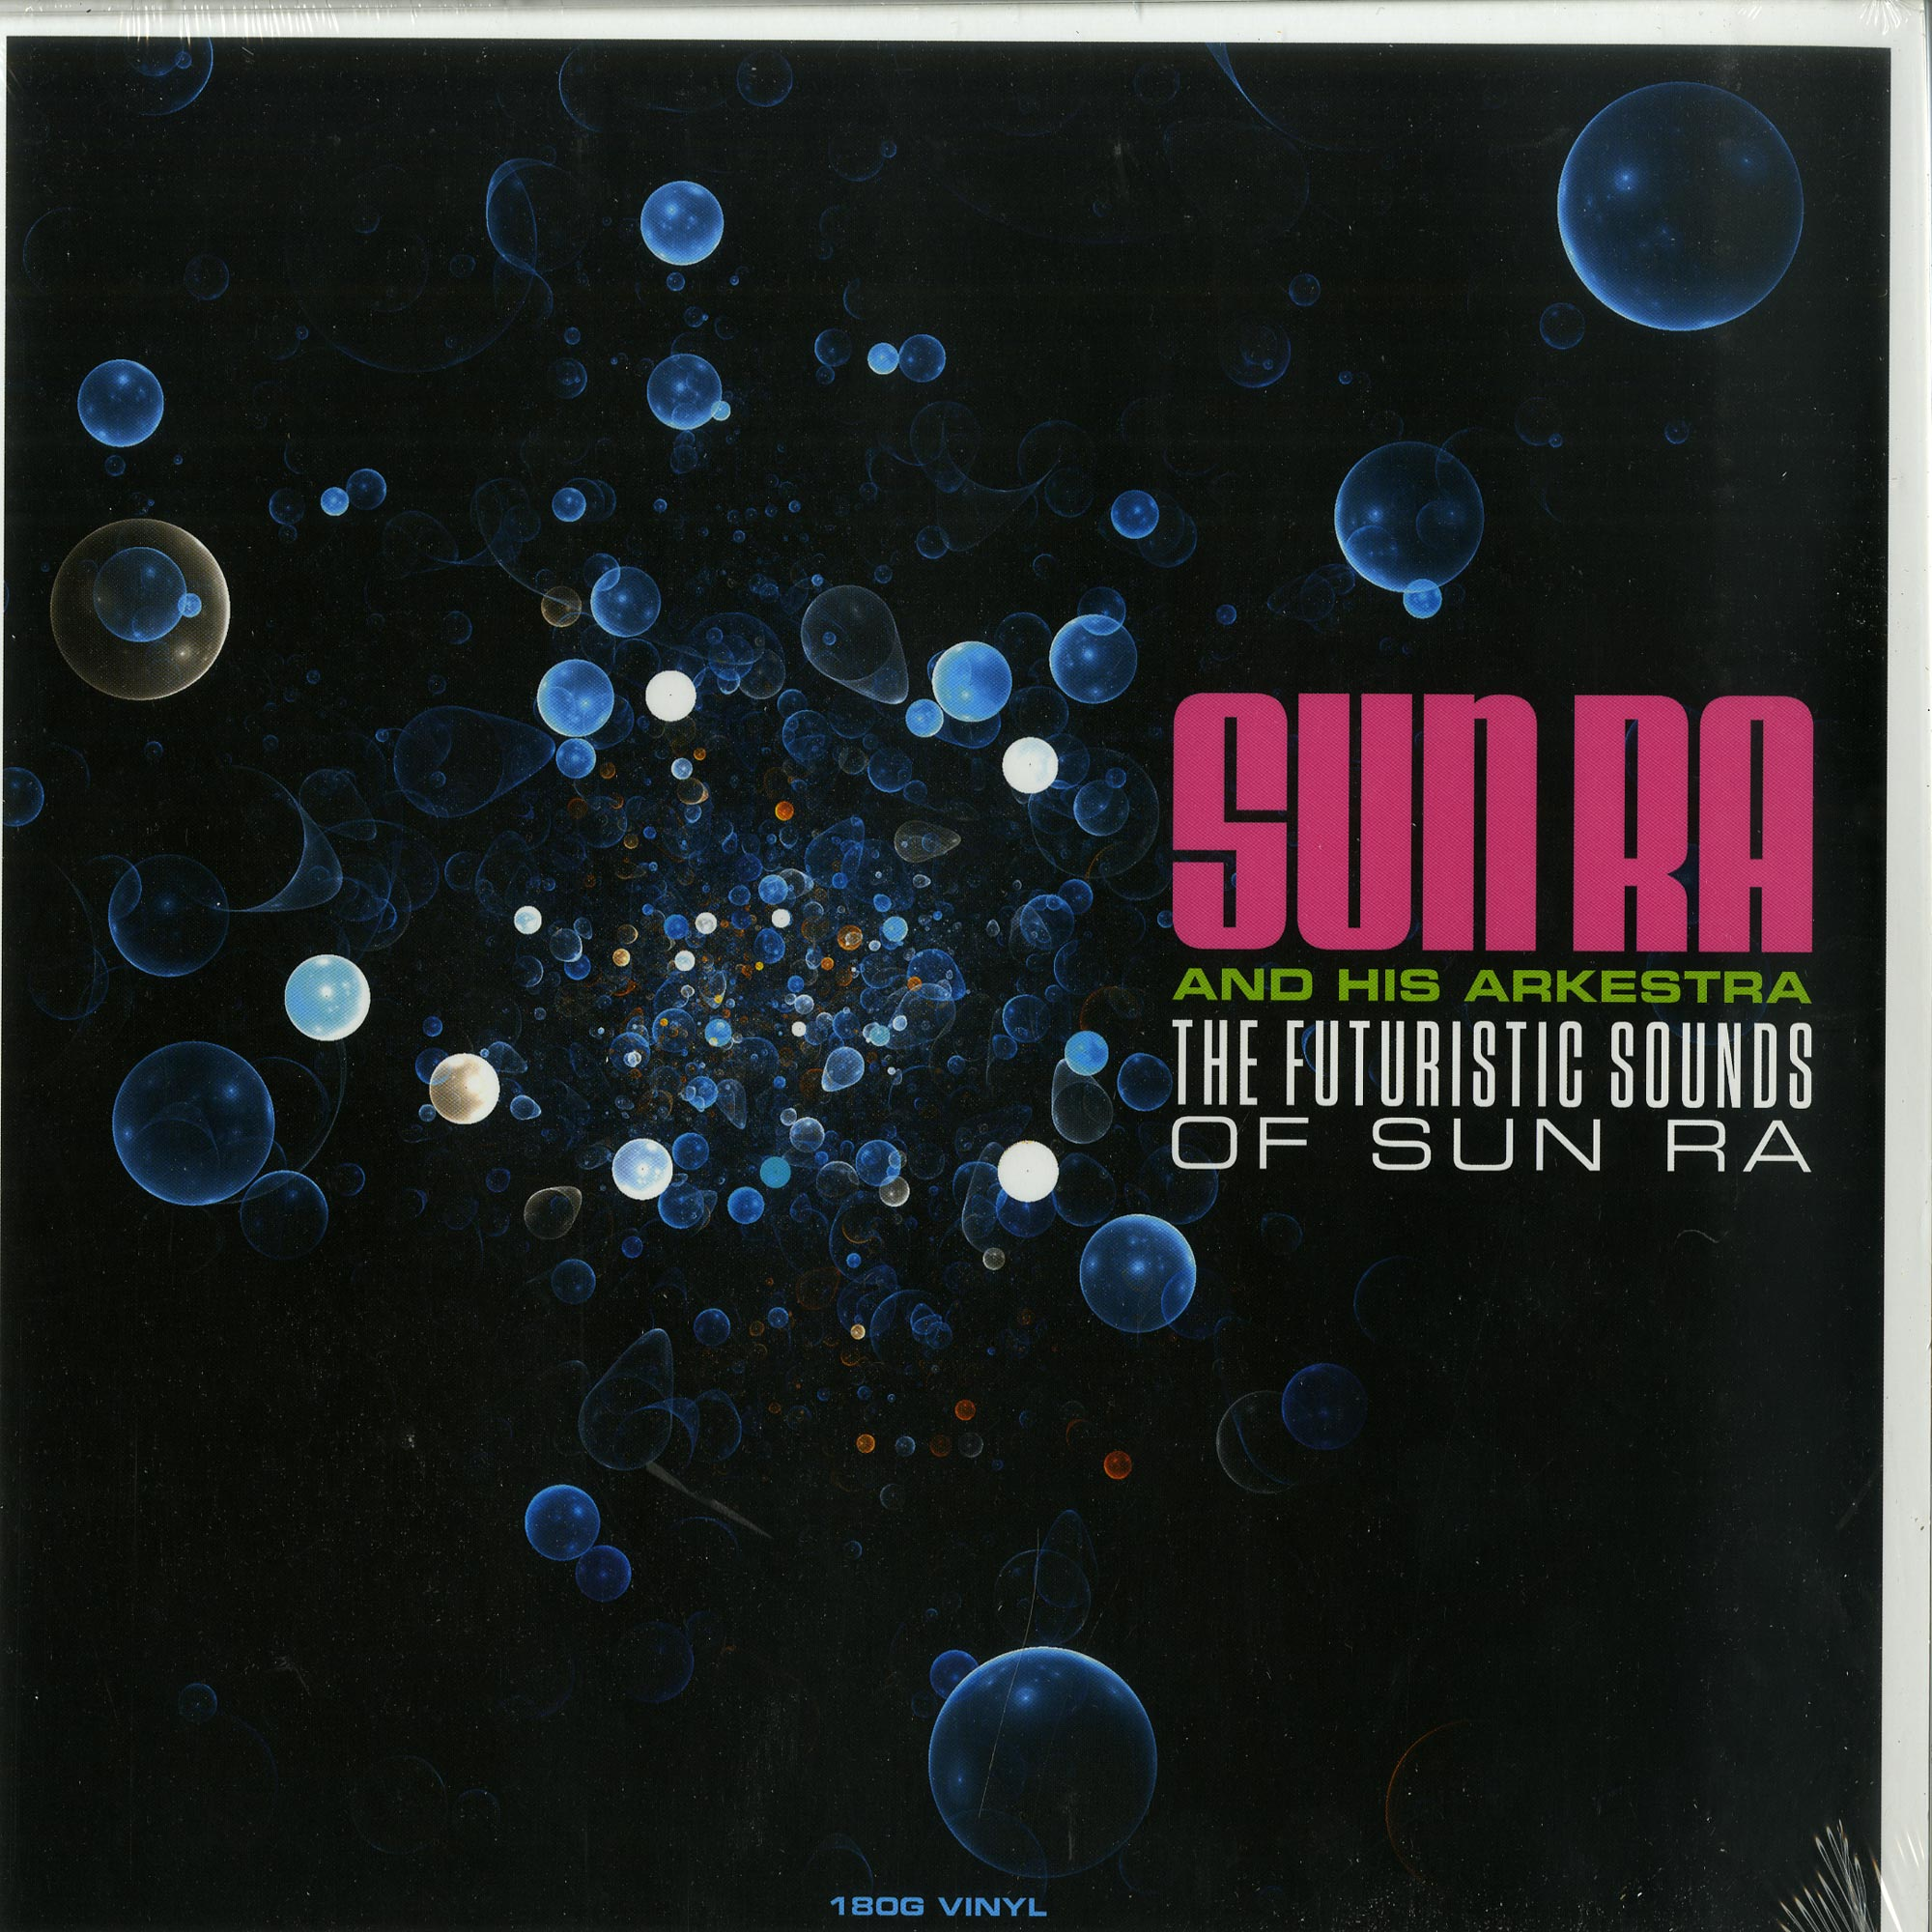 Sun Ra - THE FUTURISTIC SOUNDS OF SUN RA